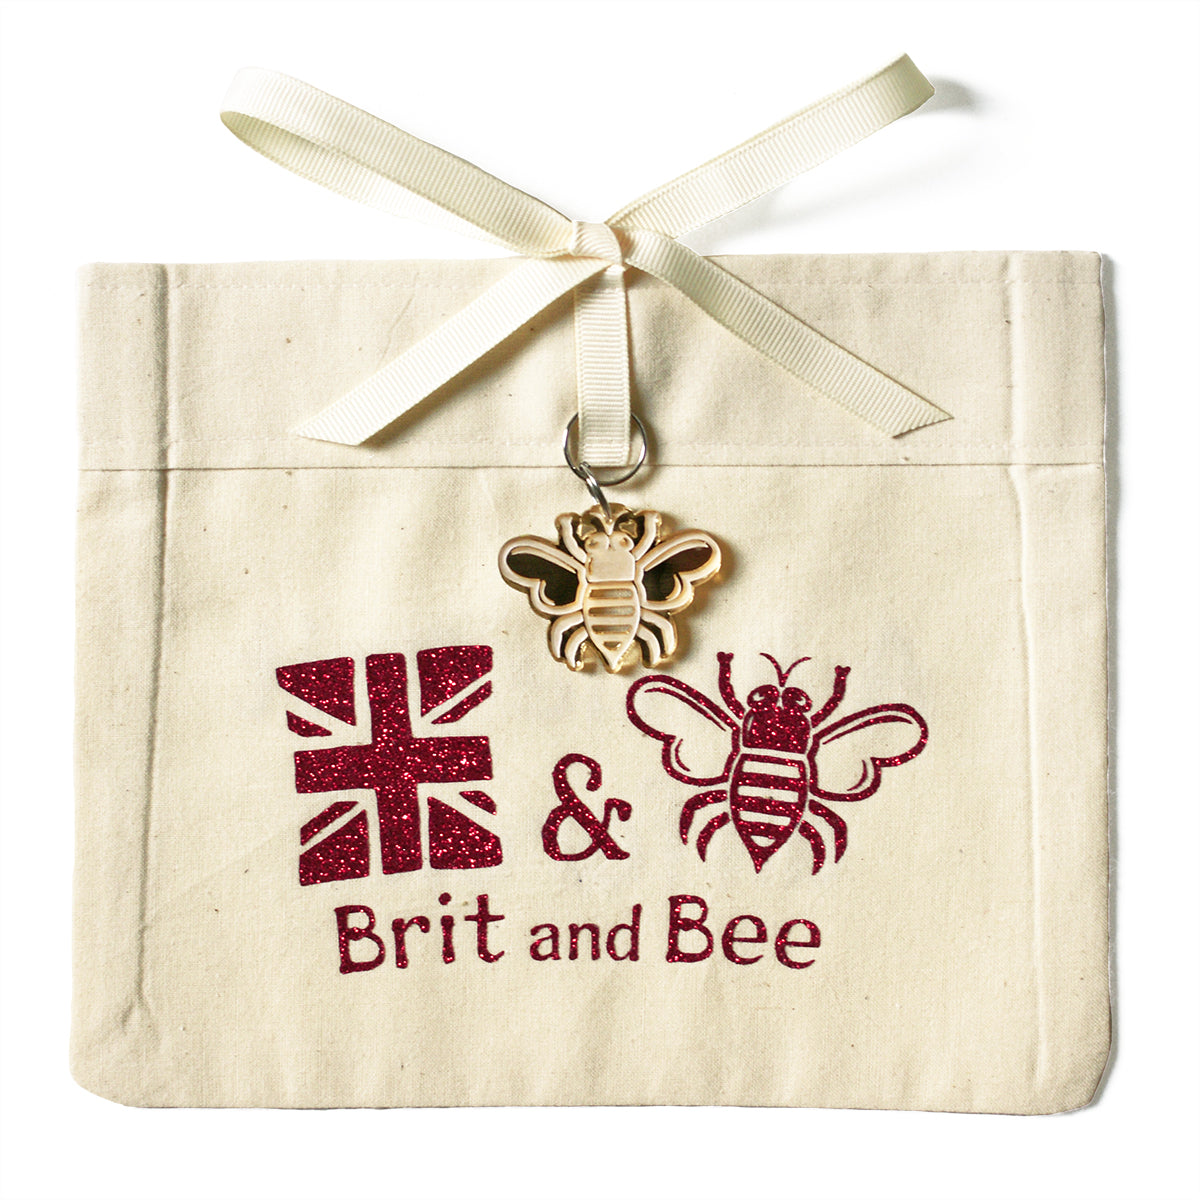 Brit and Bee Coozie - Alpha Omicron Pi